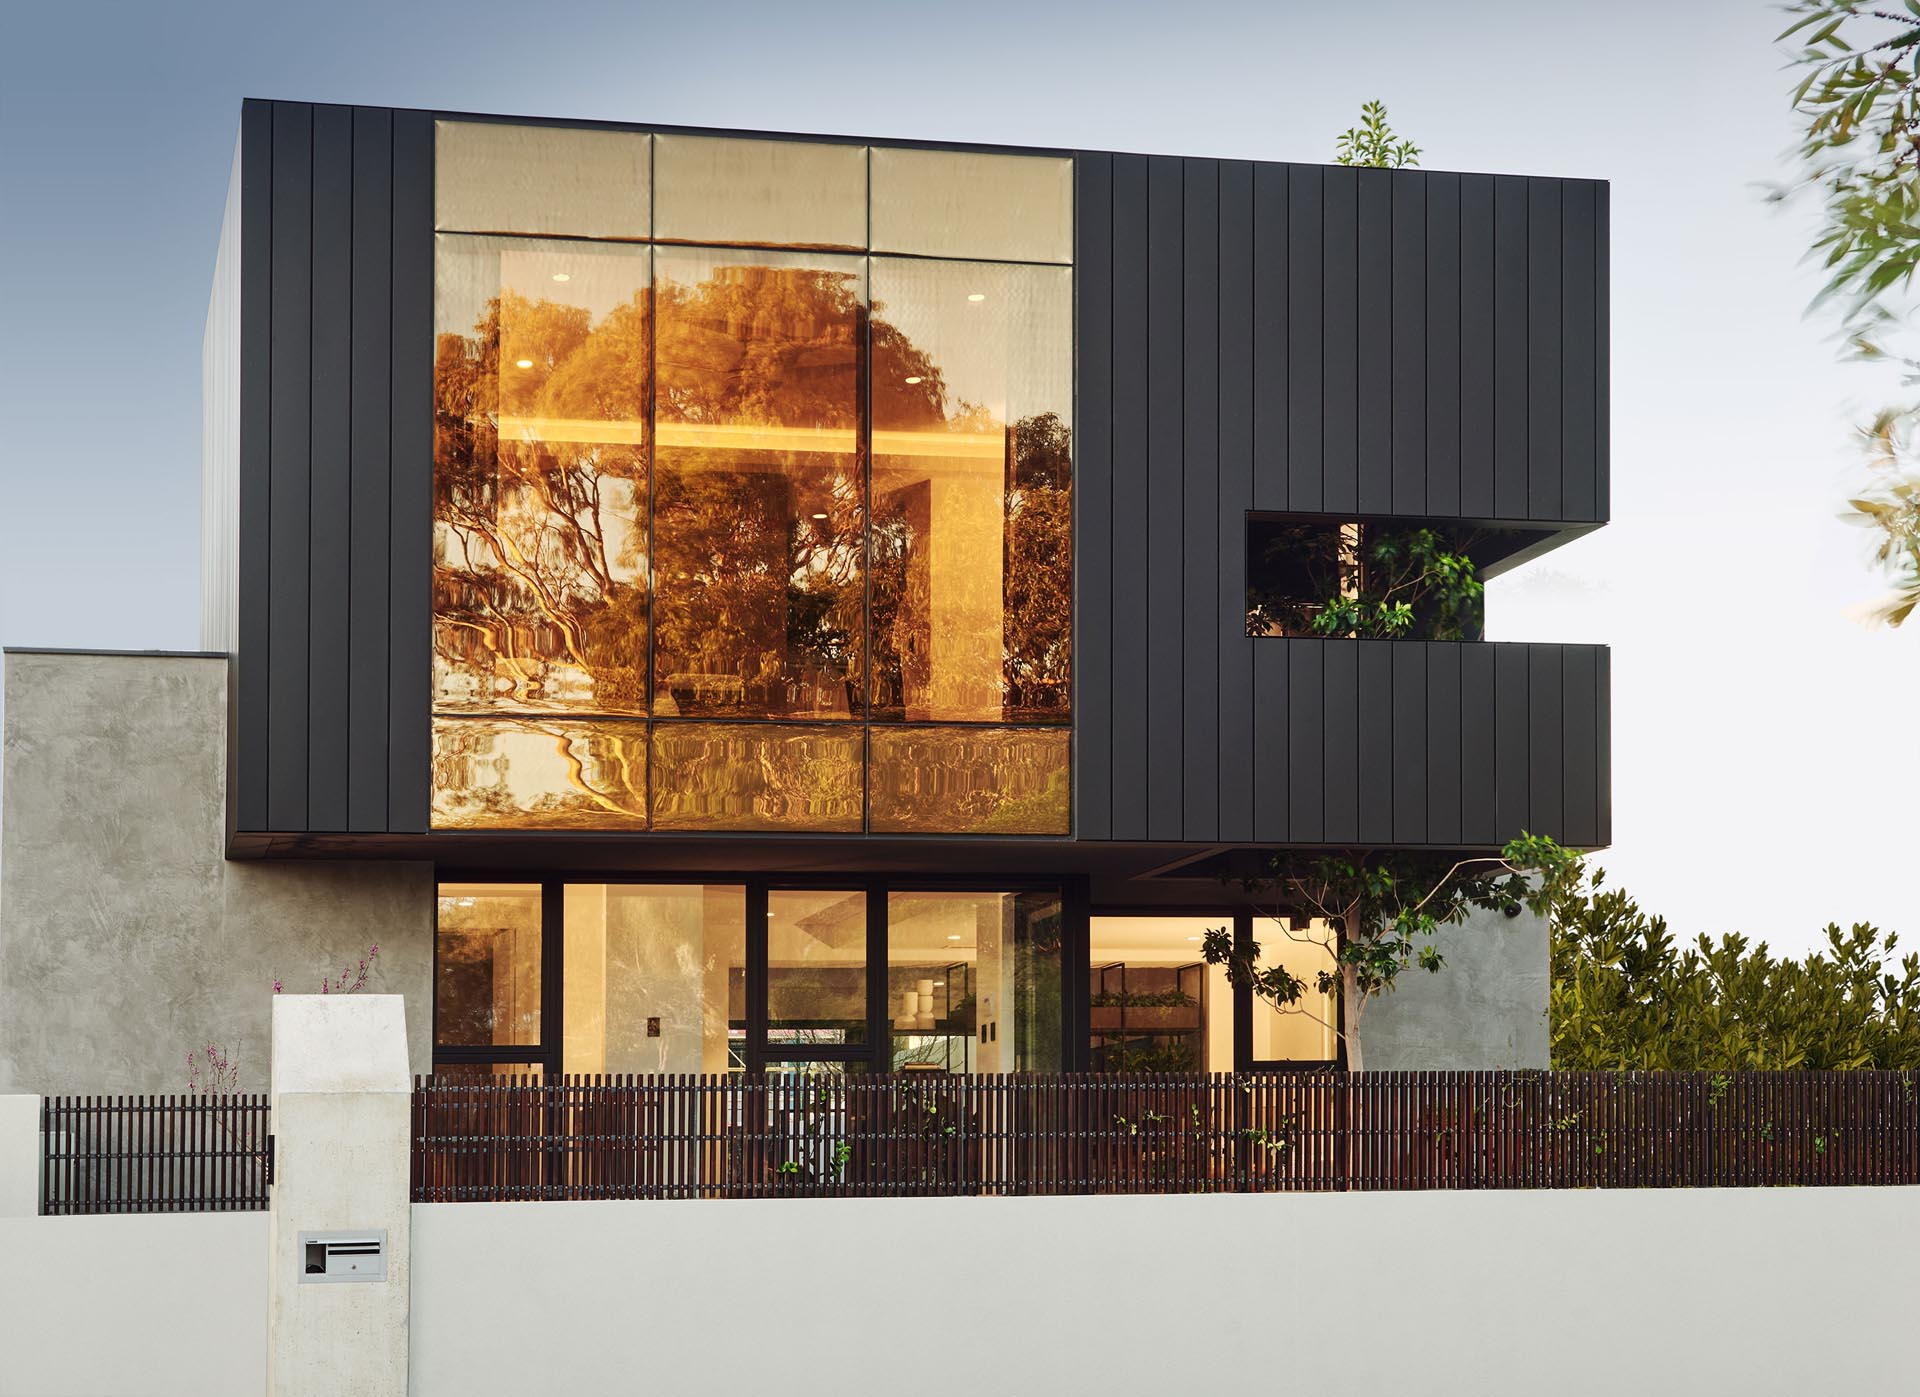 This modern home's facade features a superbronze, double glazed wall that's paired with matte siding.